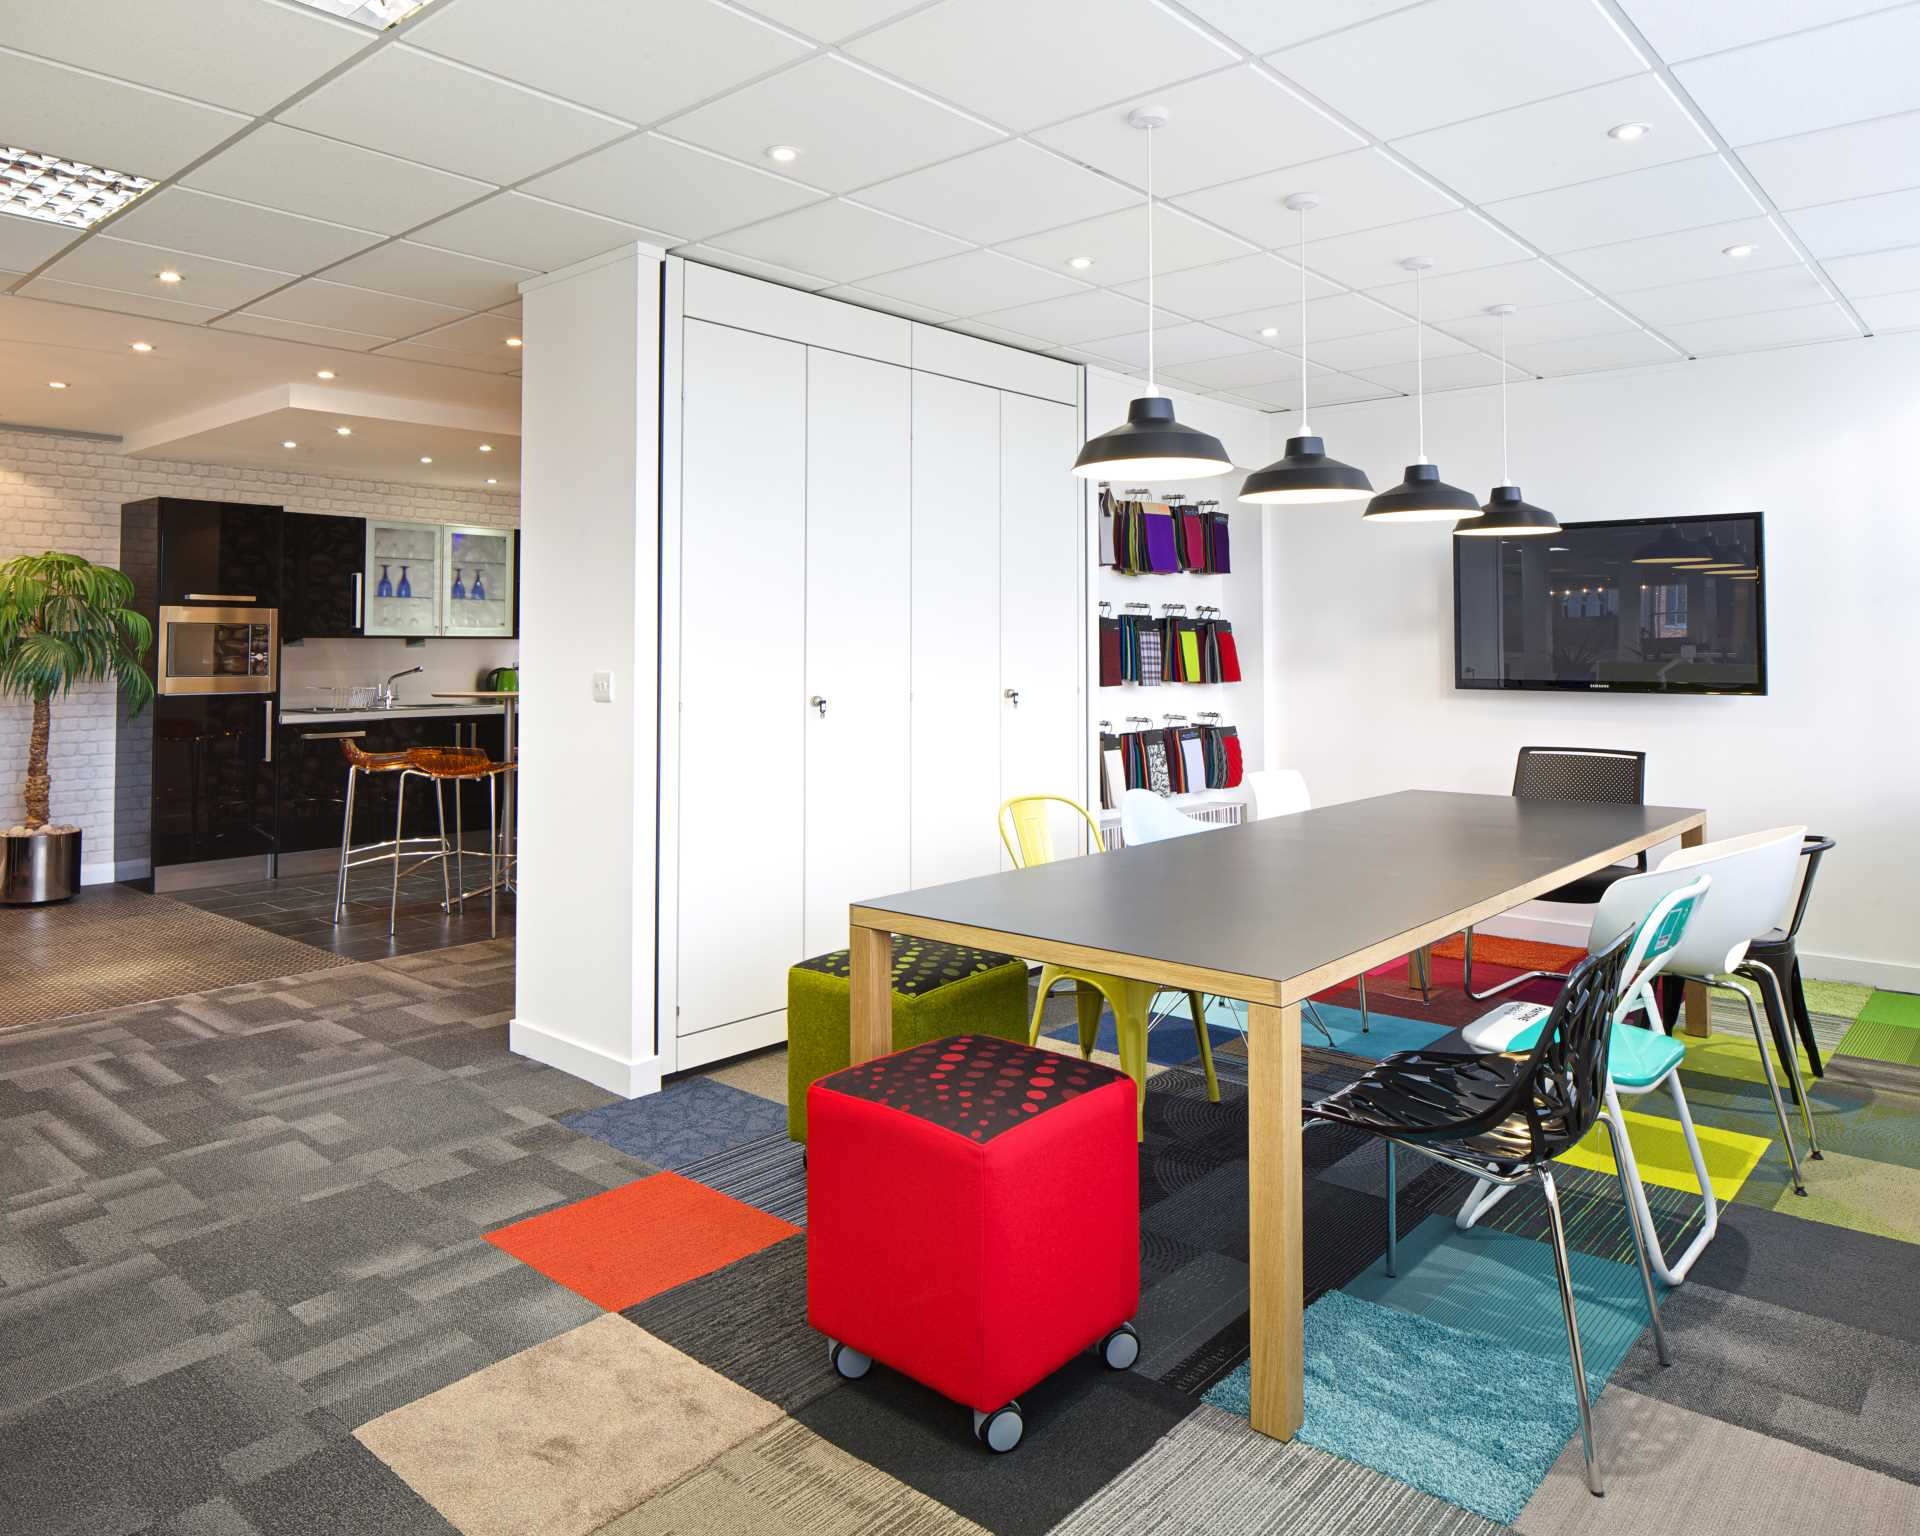 Office interior design berkshire london office for Office interior design uk